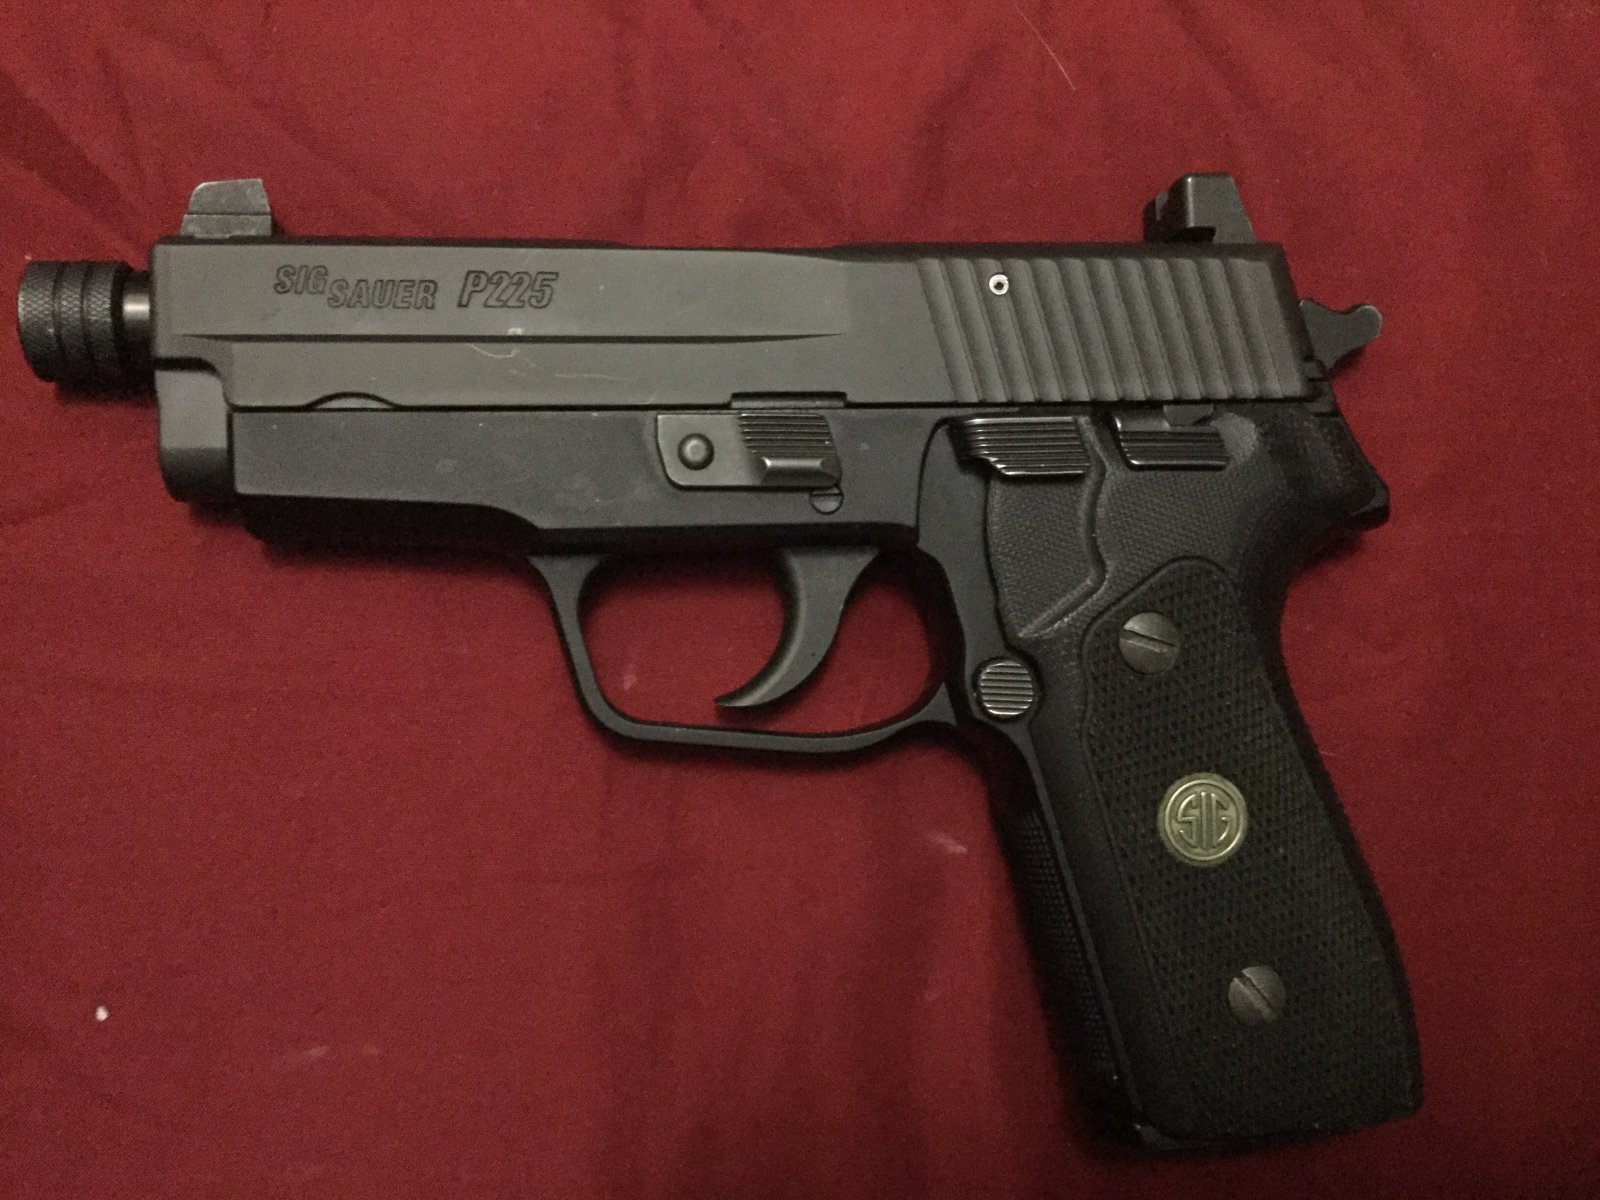 Searching for a single stack 9mm to carry